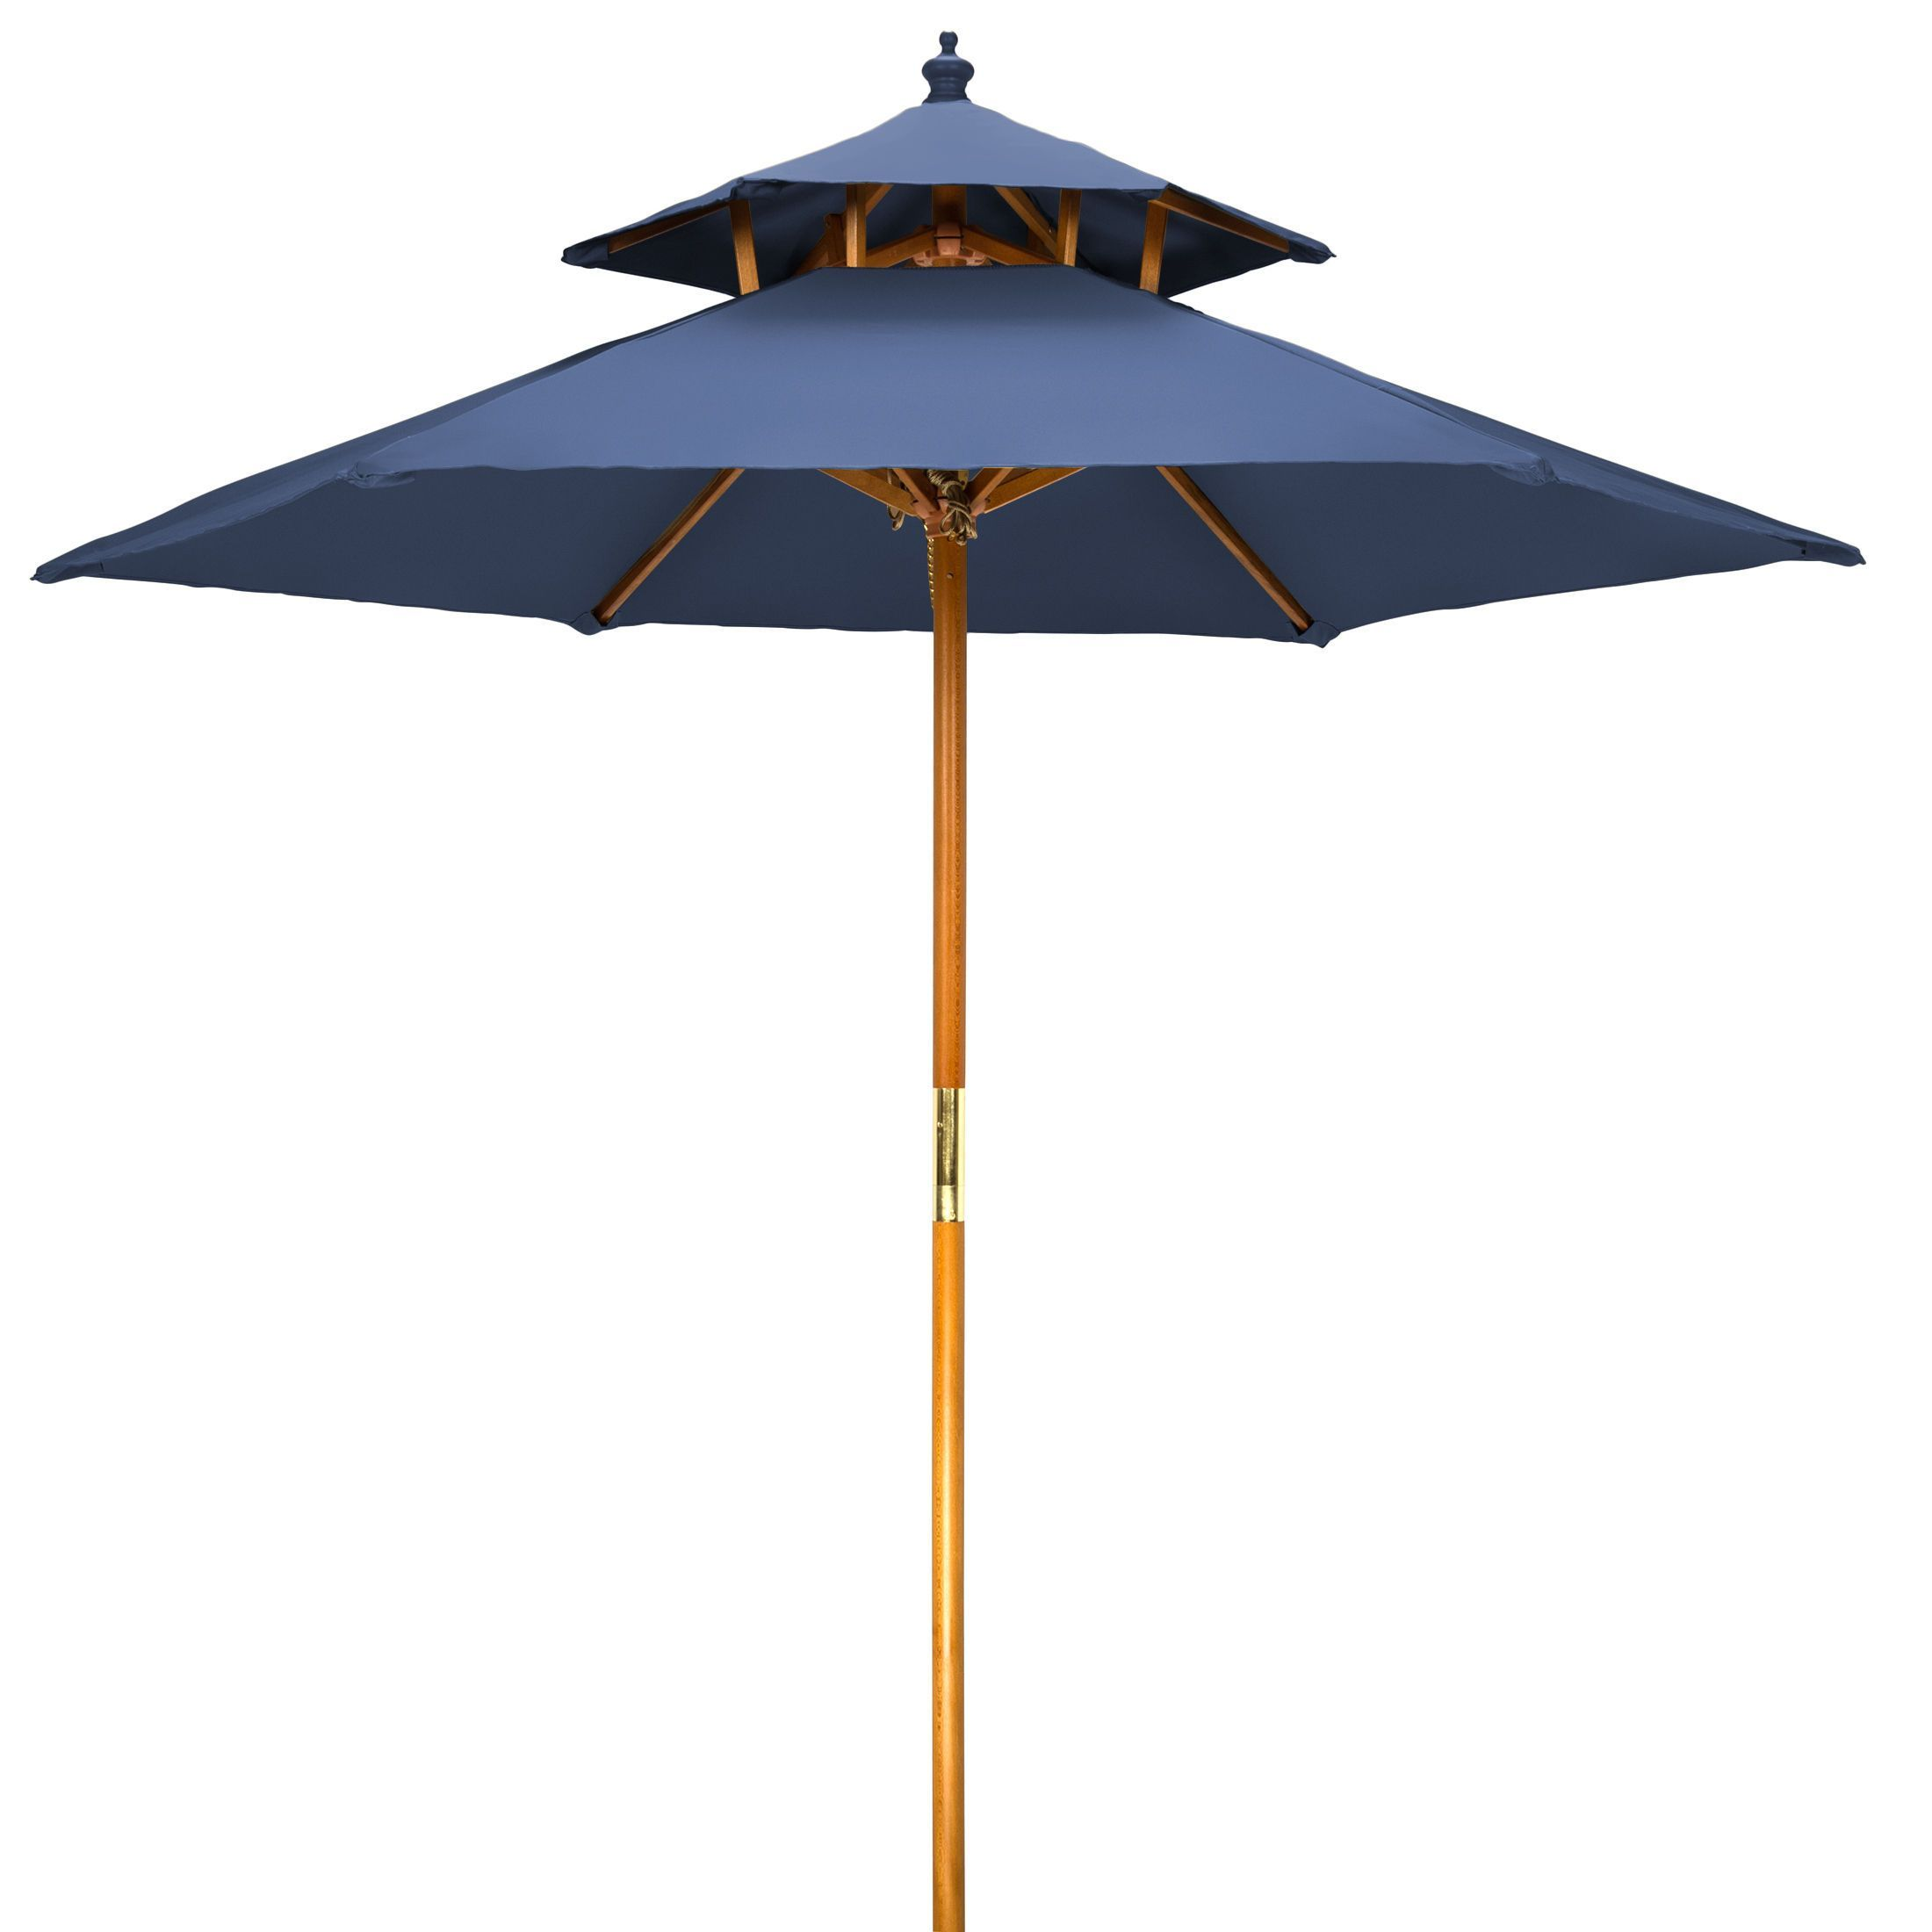 Merveilleux 7u0027 Wood 2 Tier Pagoda Style Patio Umbrella By Trademark Innovations (Blue),